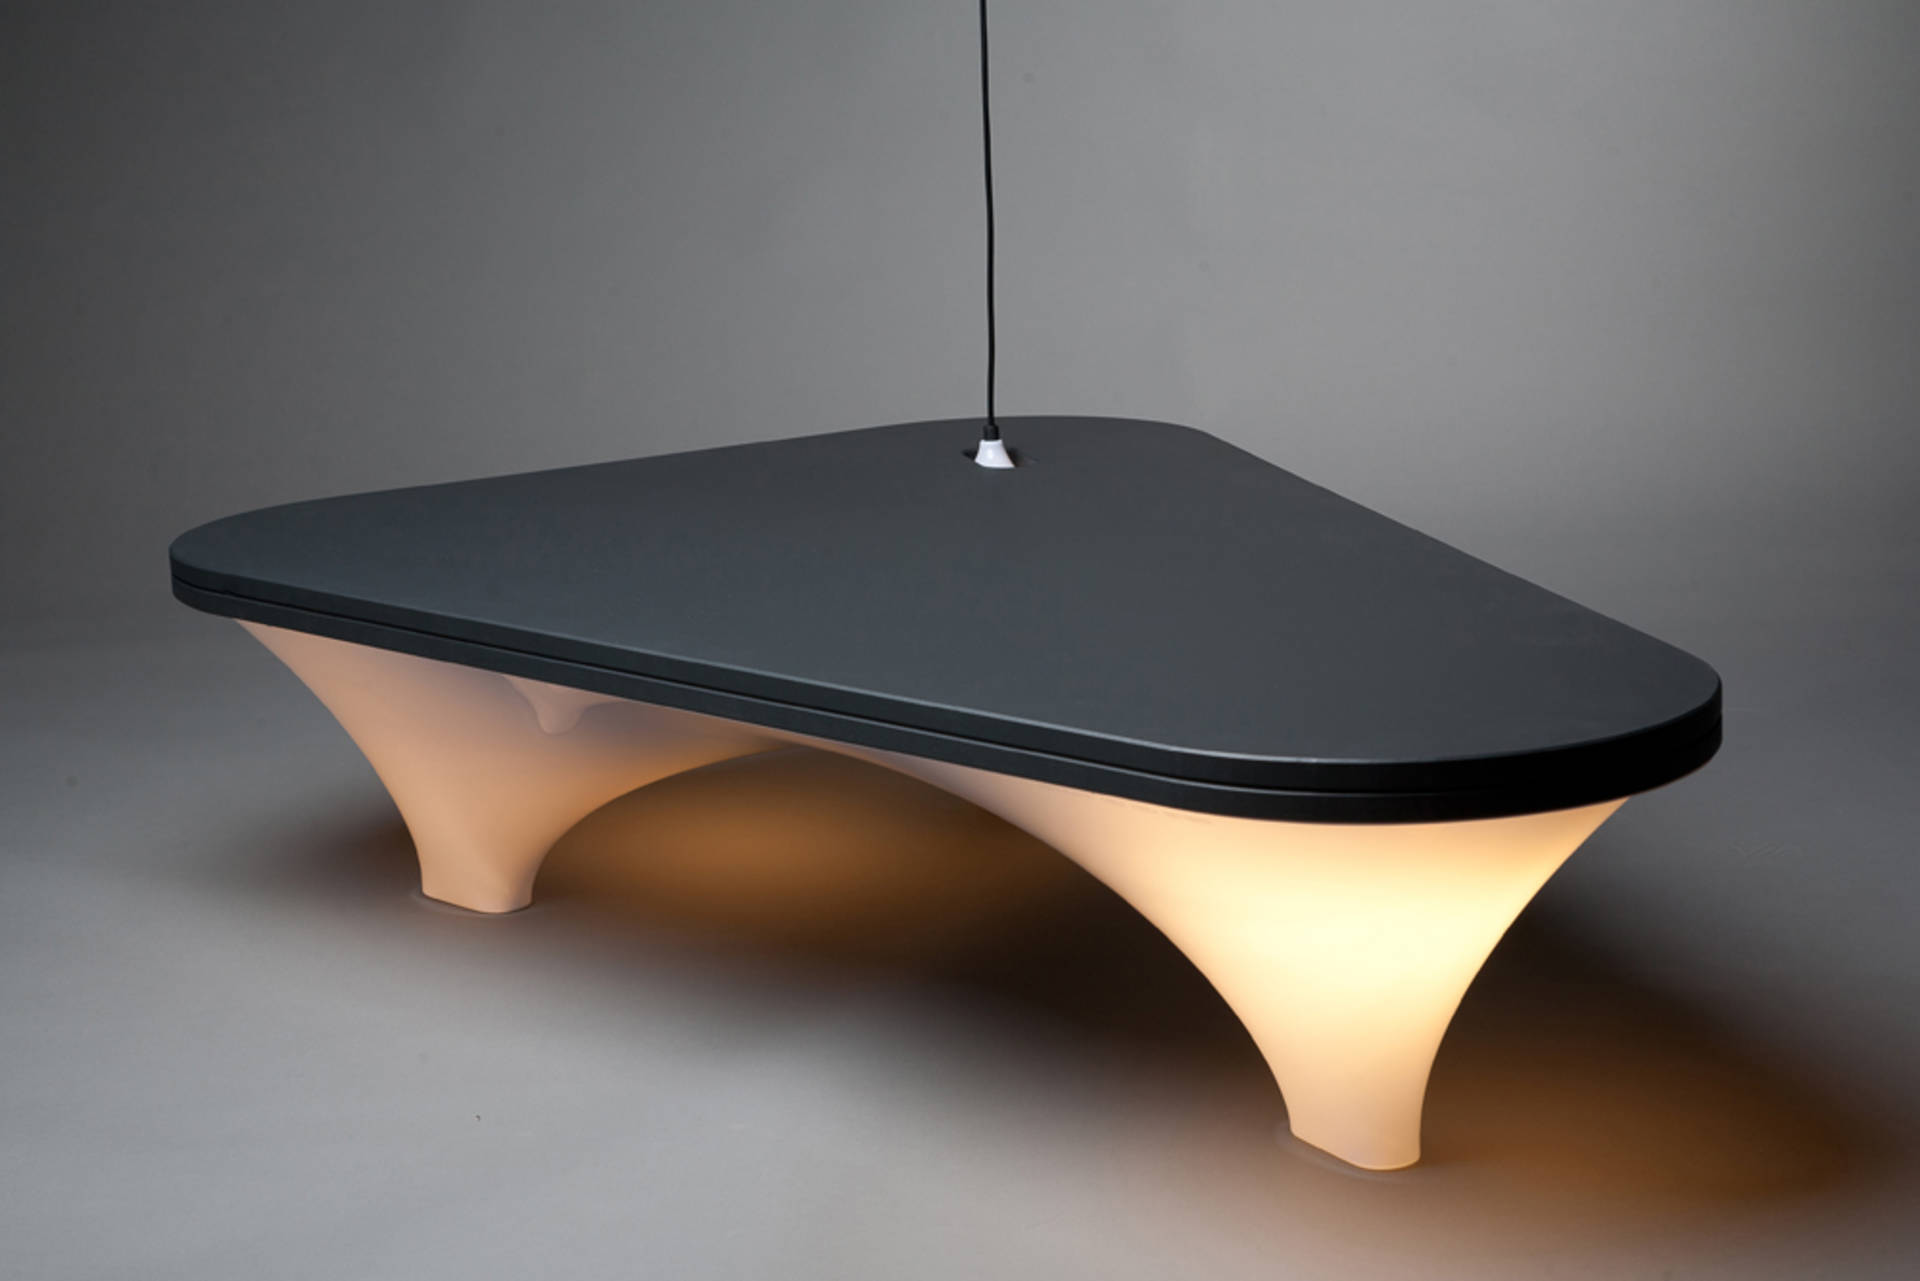 Stylish Plastic Illuminated Table by Han Koning Home Reviews